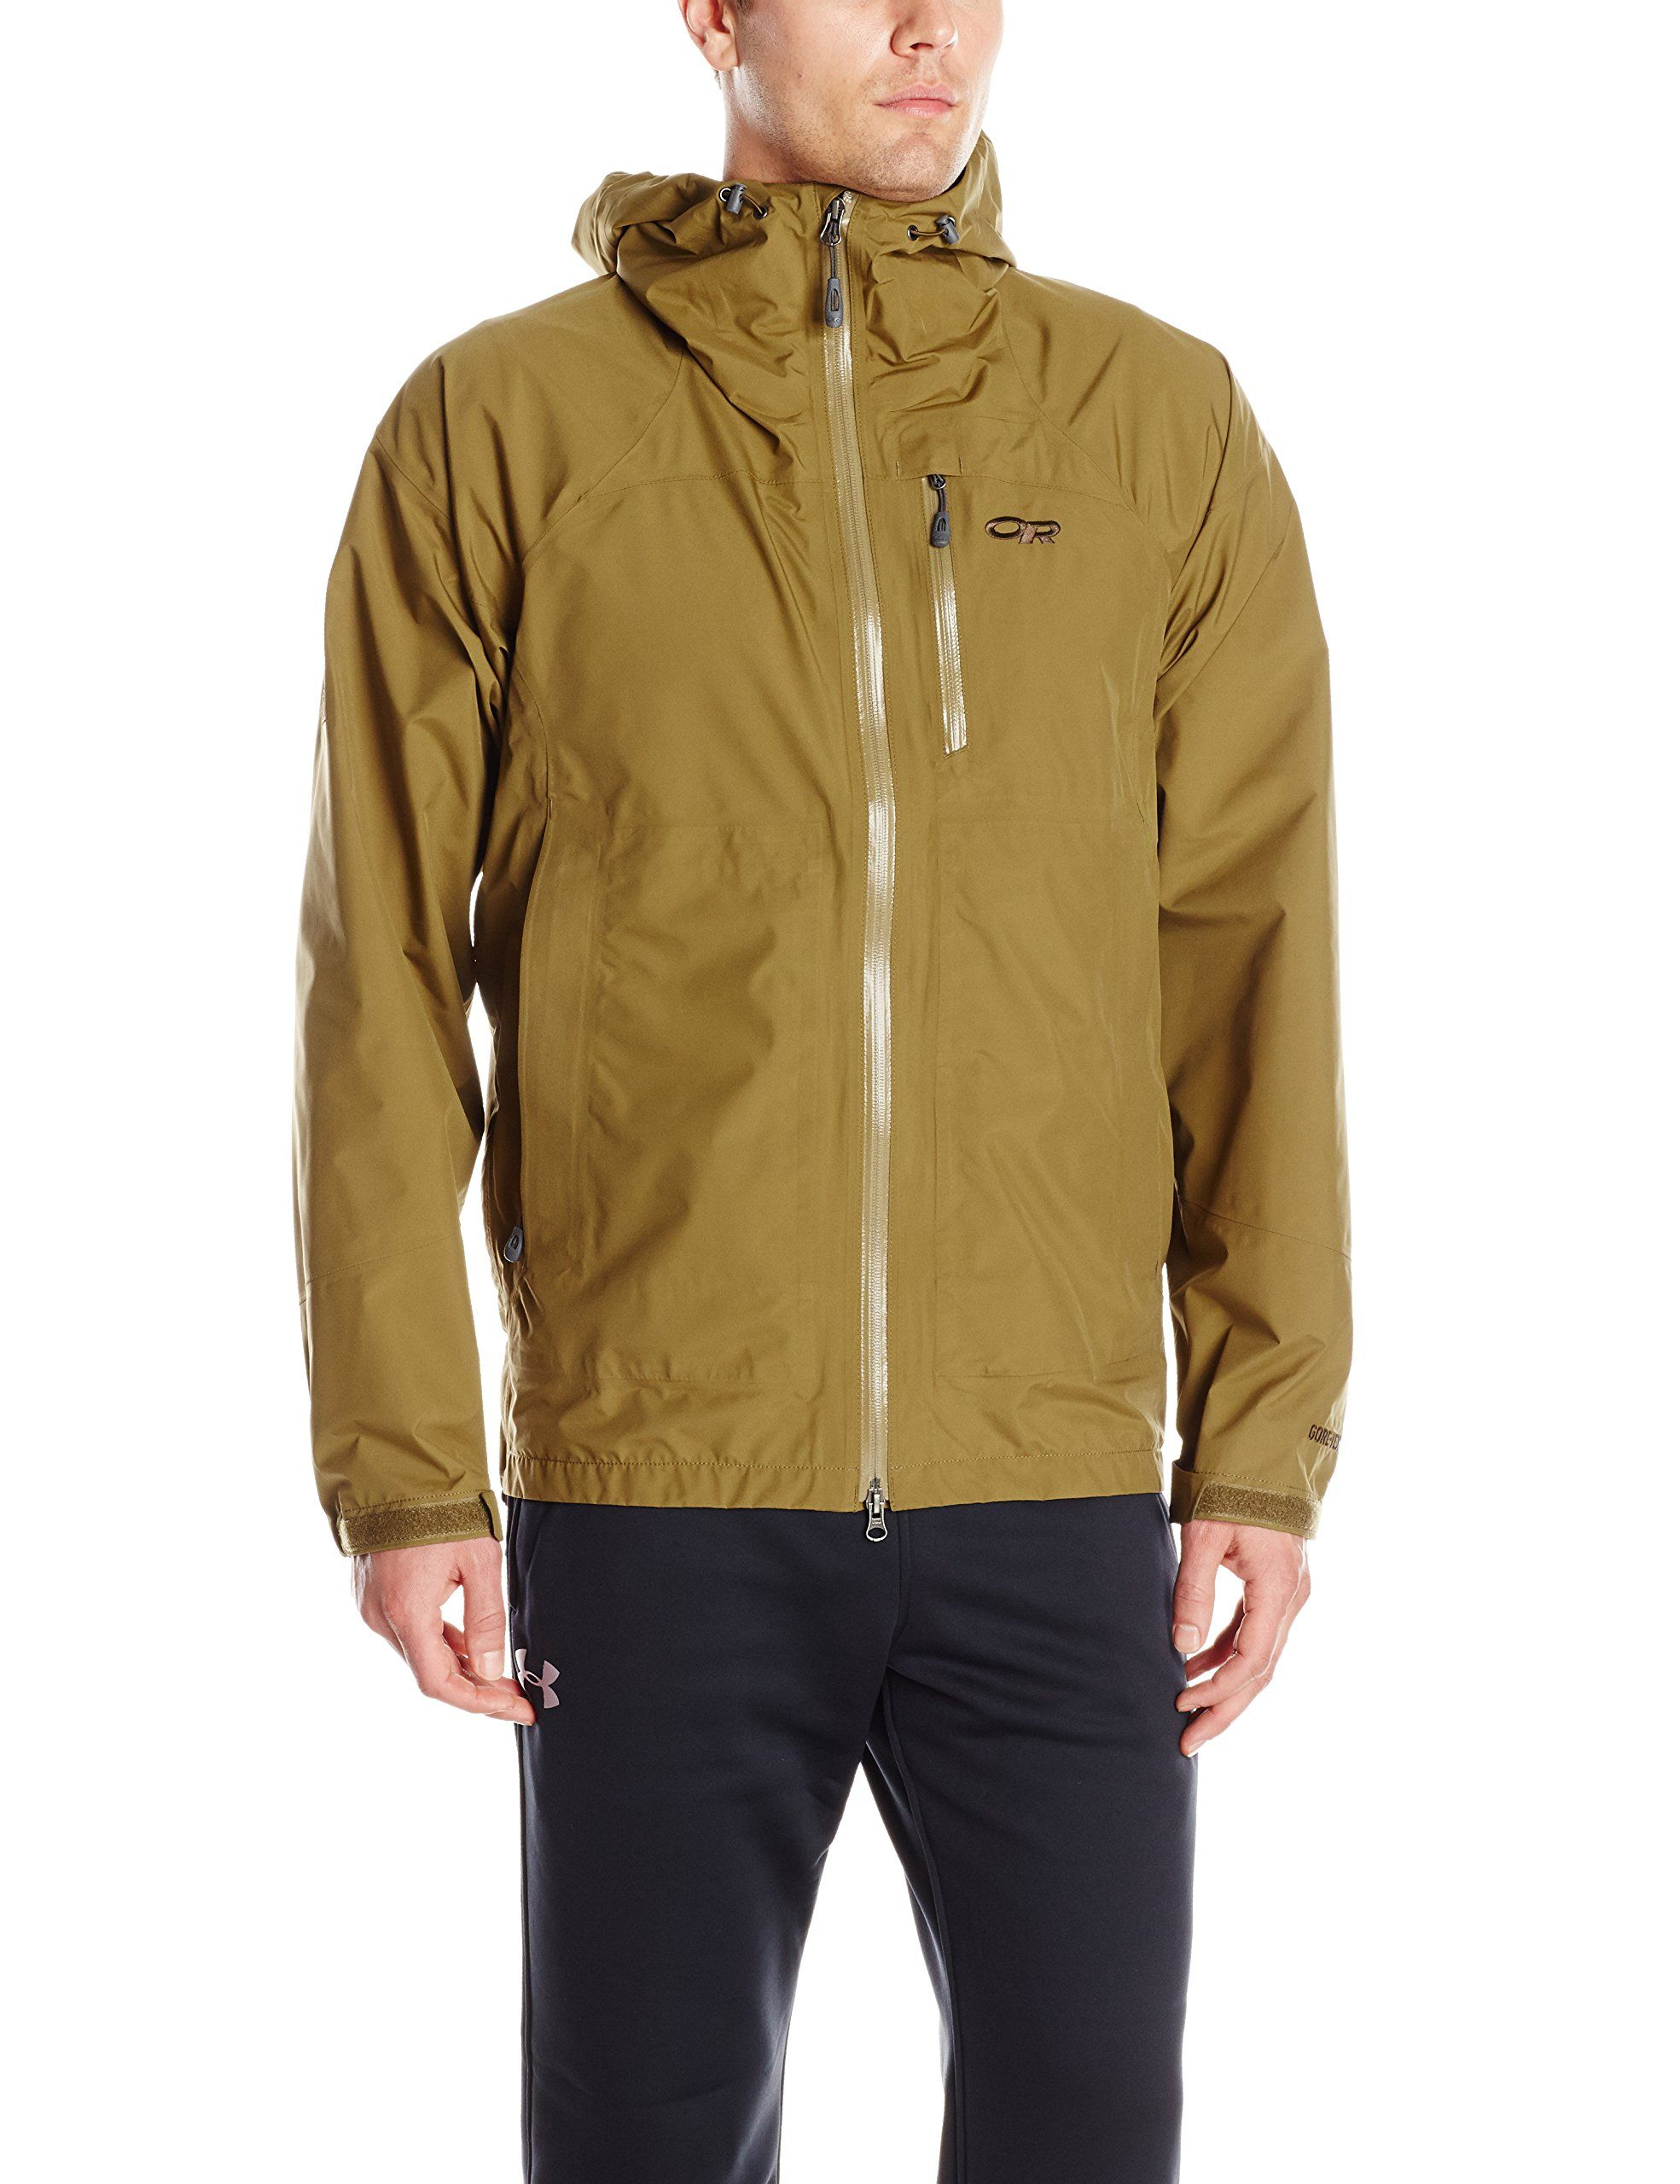 Outdoor Research Mens Foray Jacket Small Coyote ** You can